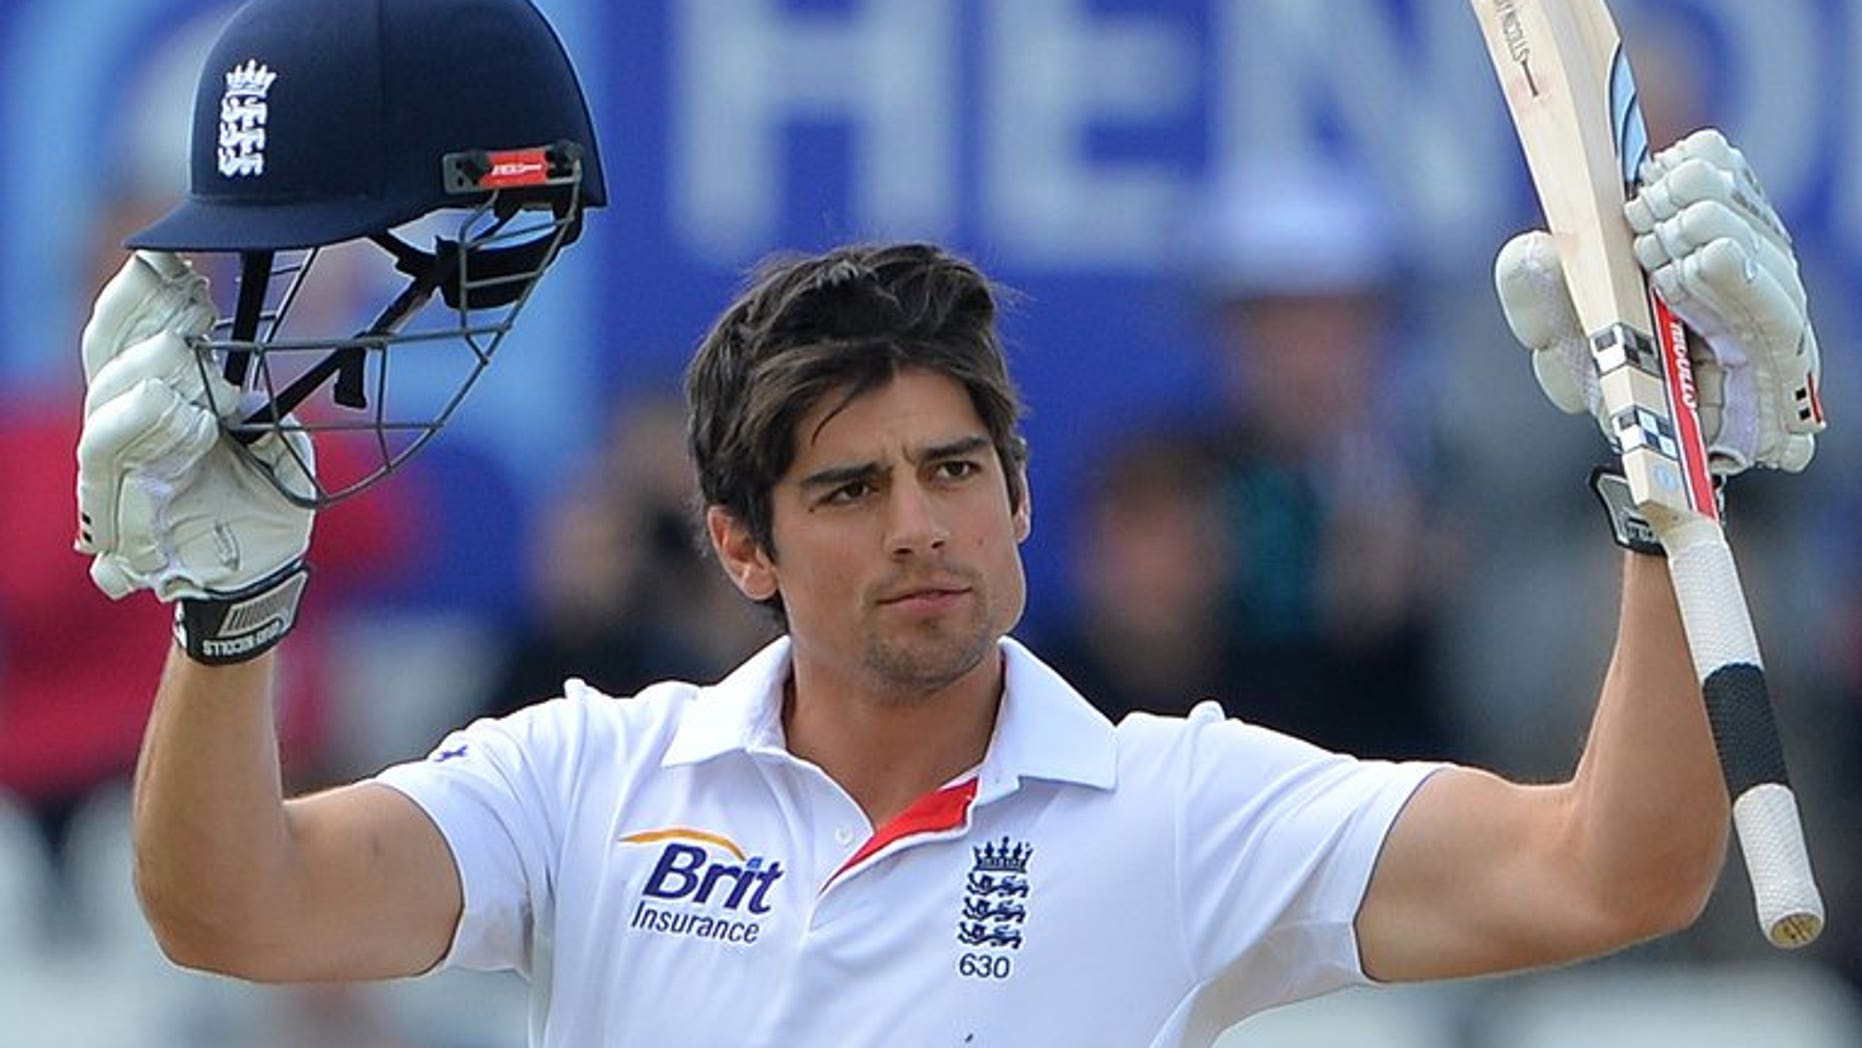 Alastair Cook celebrates a century against New Zealand at Headingly on May 27. The Englan captain won the toss and elected to bat in the first Ashes Test on Wednesday as Australia sprang a major surprise by giving a debut to teenage spinner Ashton Agar.